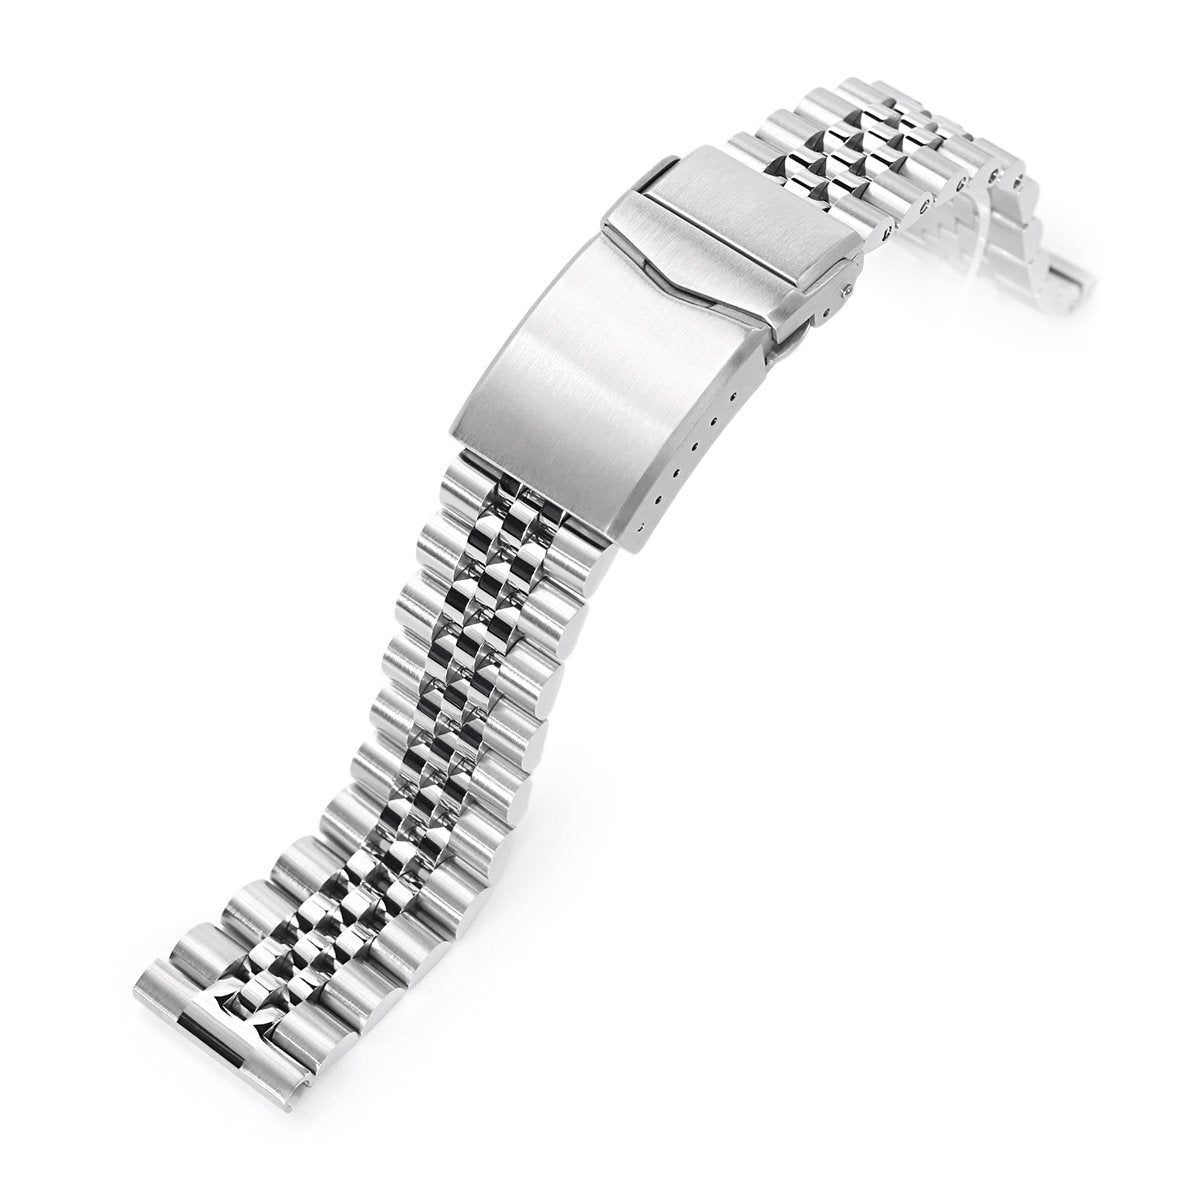 20mm Super-J Louis 316L Stainless Steel Watch Bracelet Straight End V-Clasp Brushed Strapcode Watch Bands